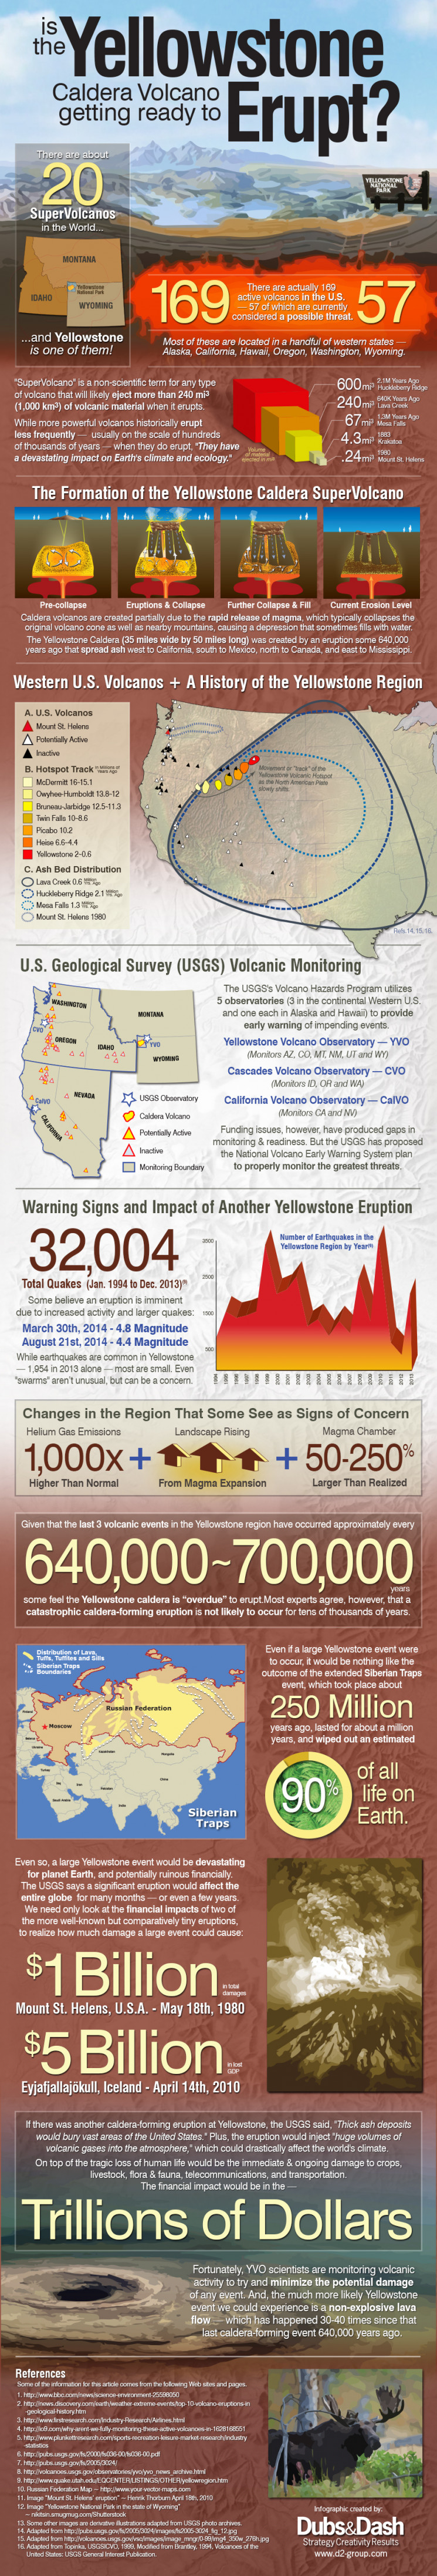 Is the Yellowstone Caldera Volcano getting ready to Erupt?